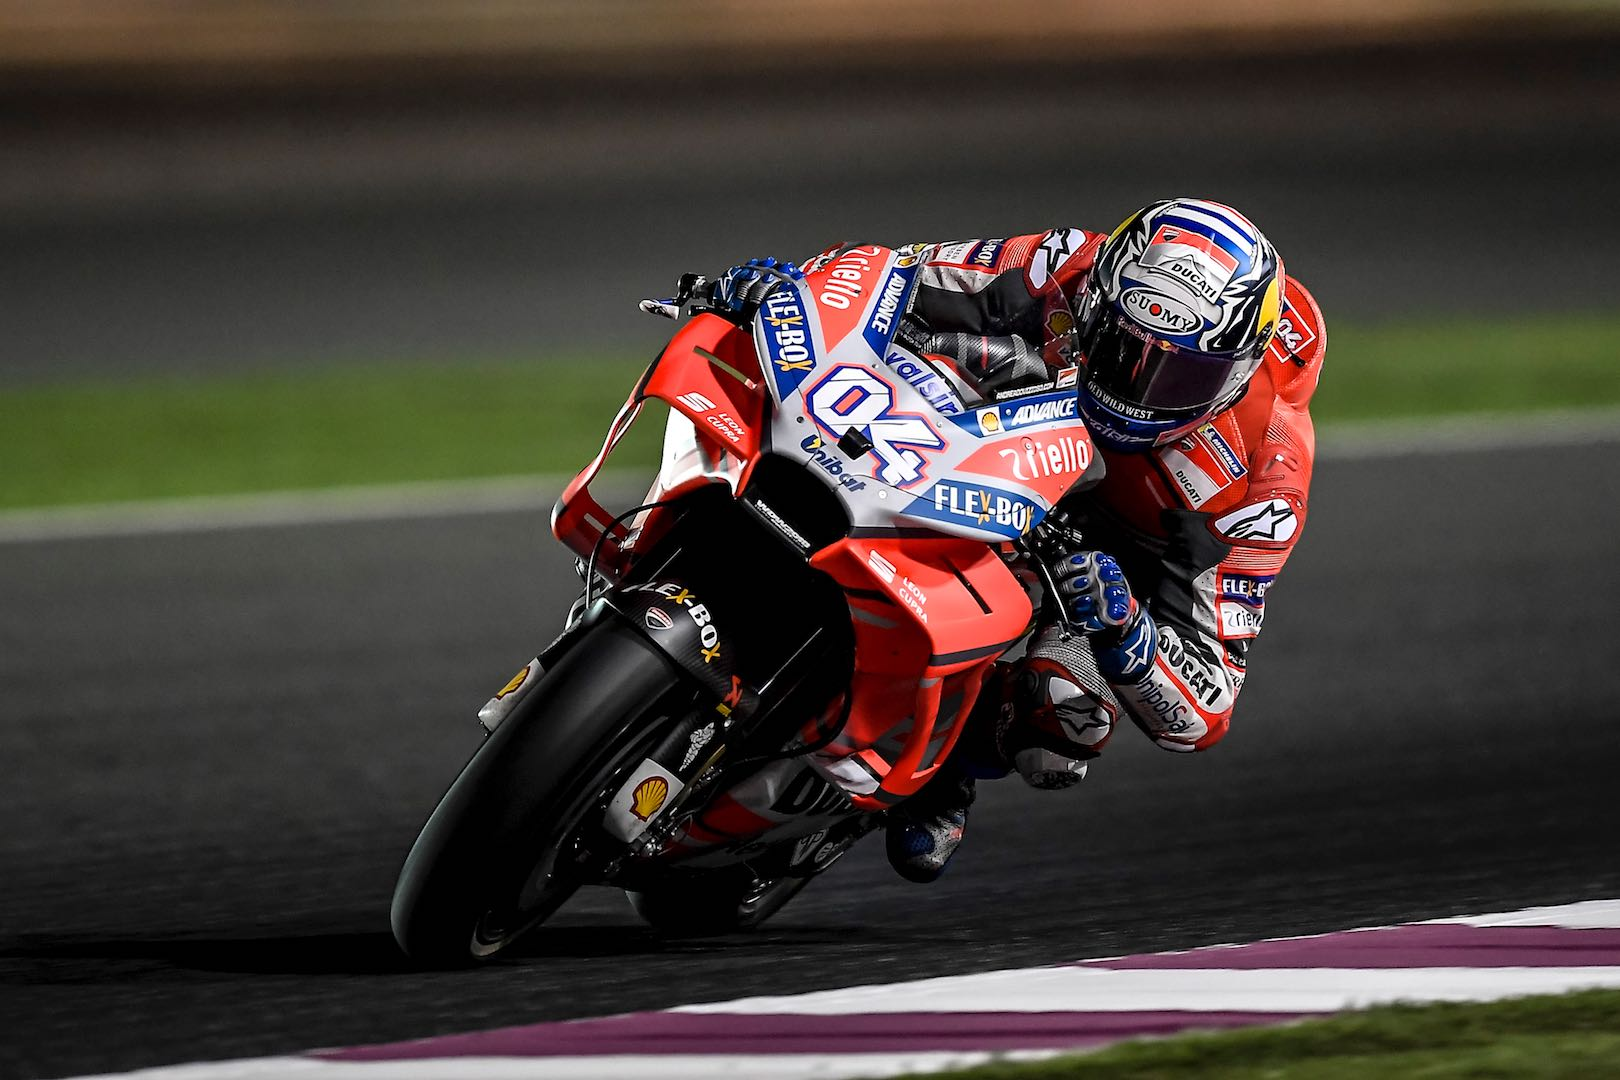 2018 Qatar MotoGP Test Day 1: Yamaha's Vinales Just Tops Ducati's Dovizioso